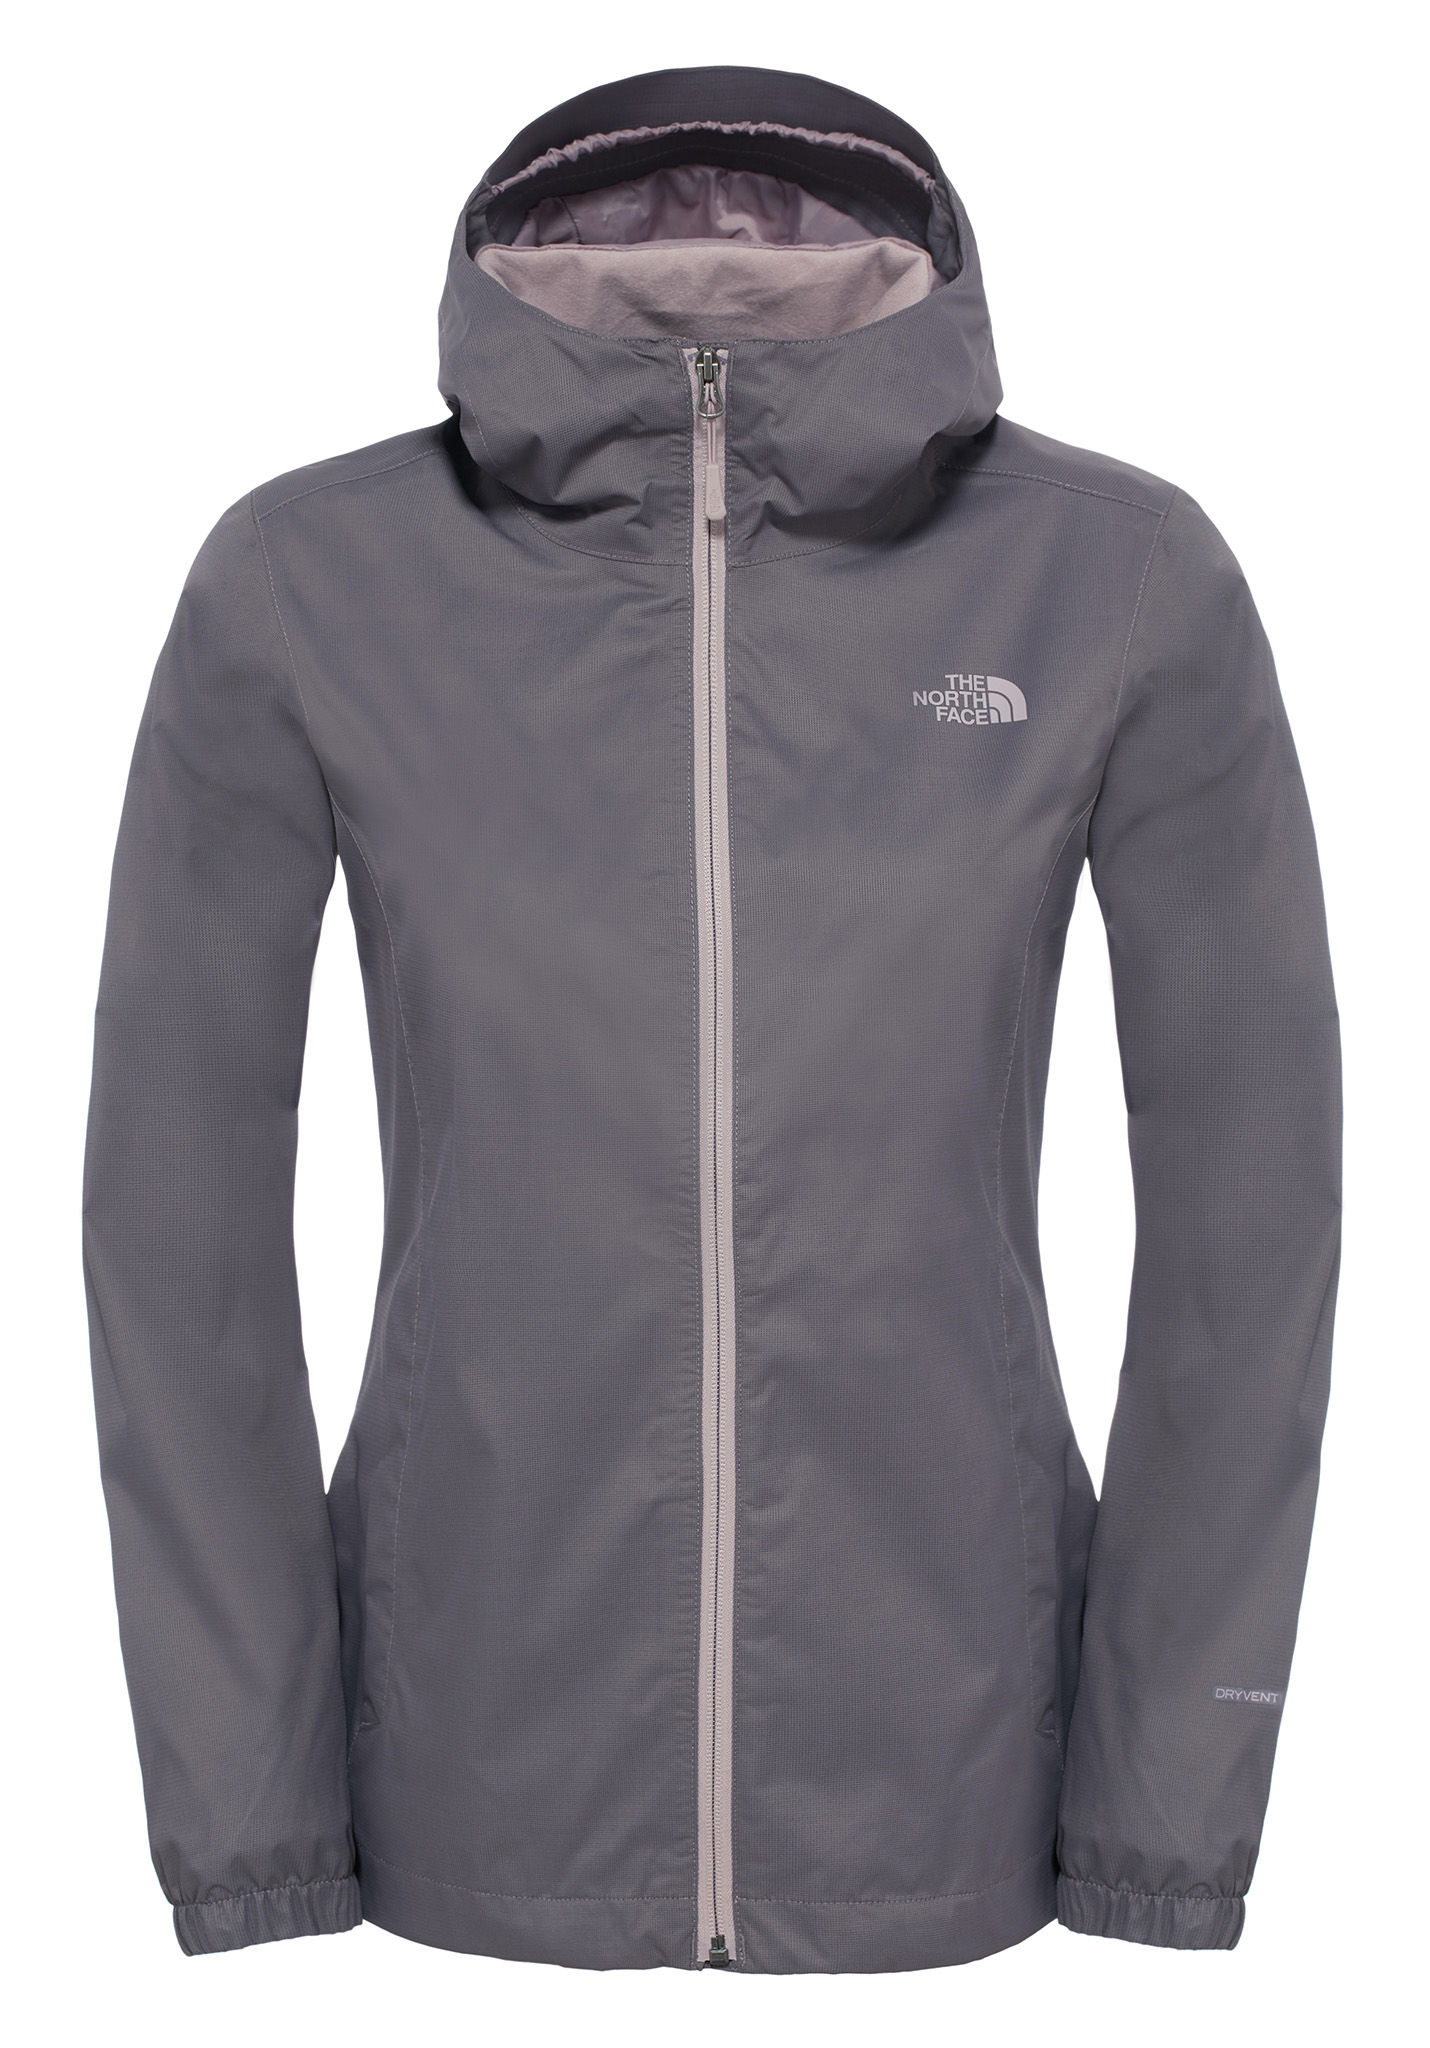 ... size 40 1bda4 4eff4 THE NORTH FACE Quest - Jacket for Women - Grey -  Planet ... cb5296a8f